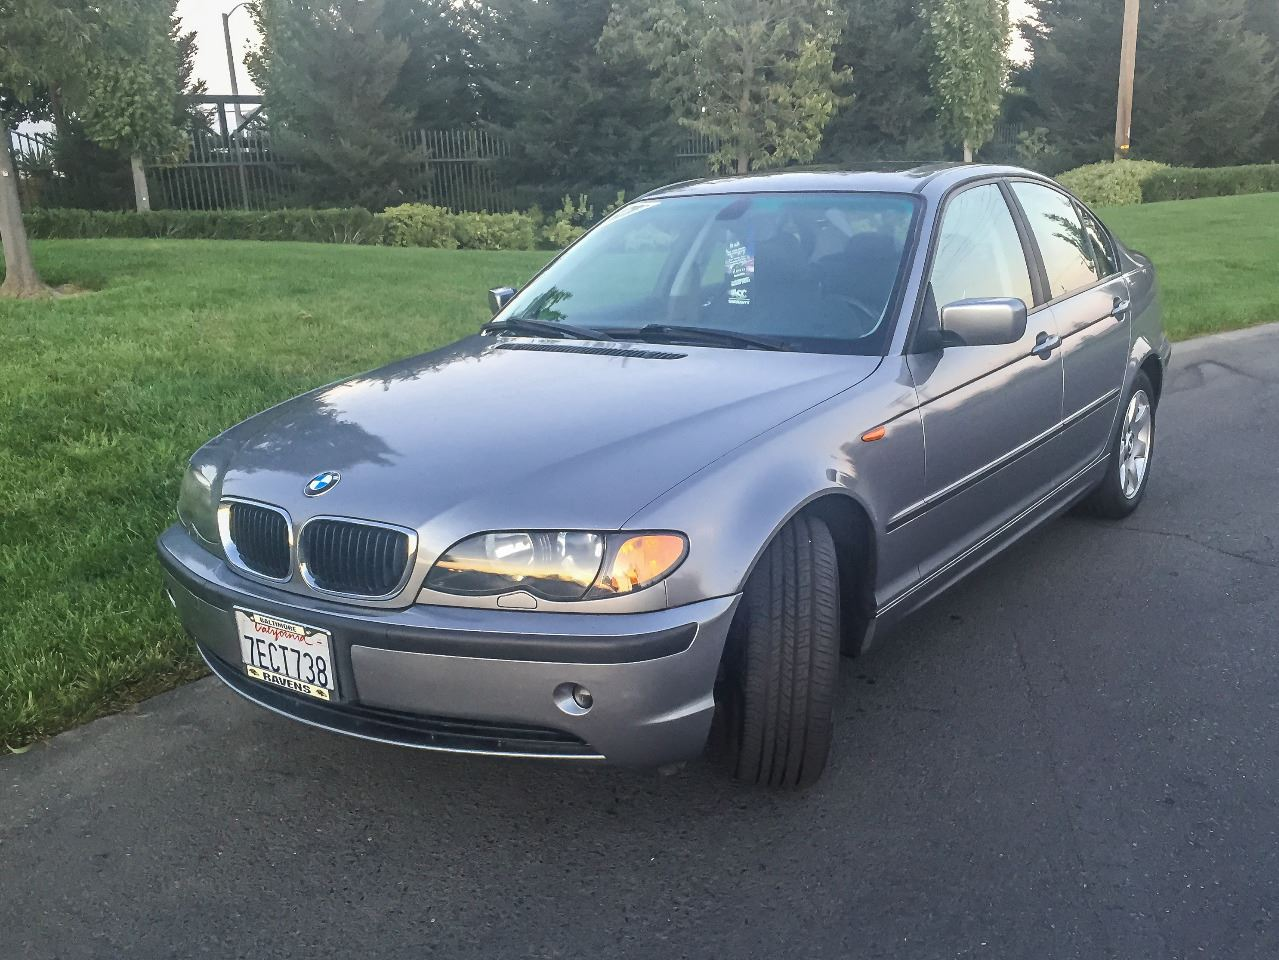 sacramento online en copart on in salvage lot view auctions i sale auto certificate black left bmw carfinder ca